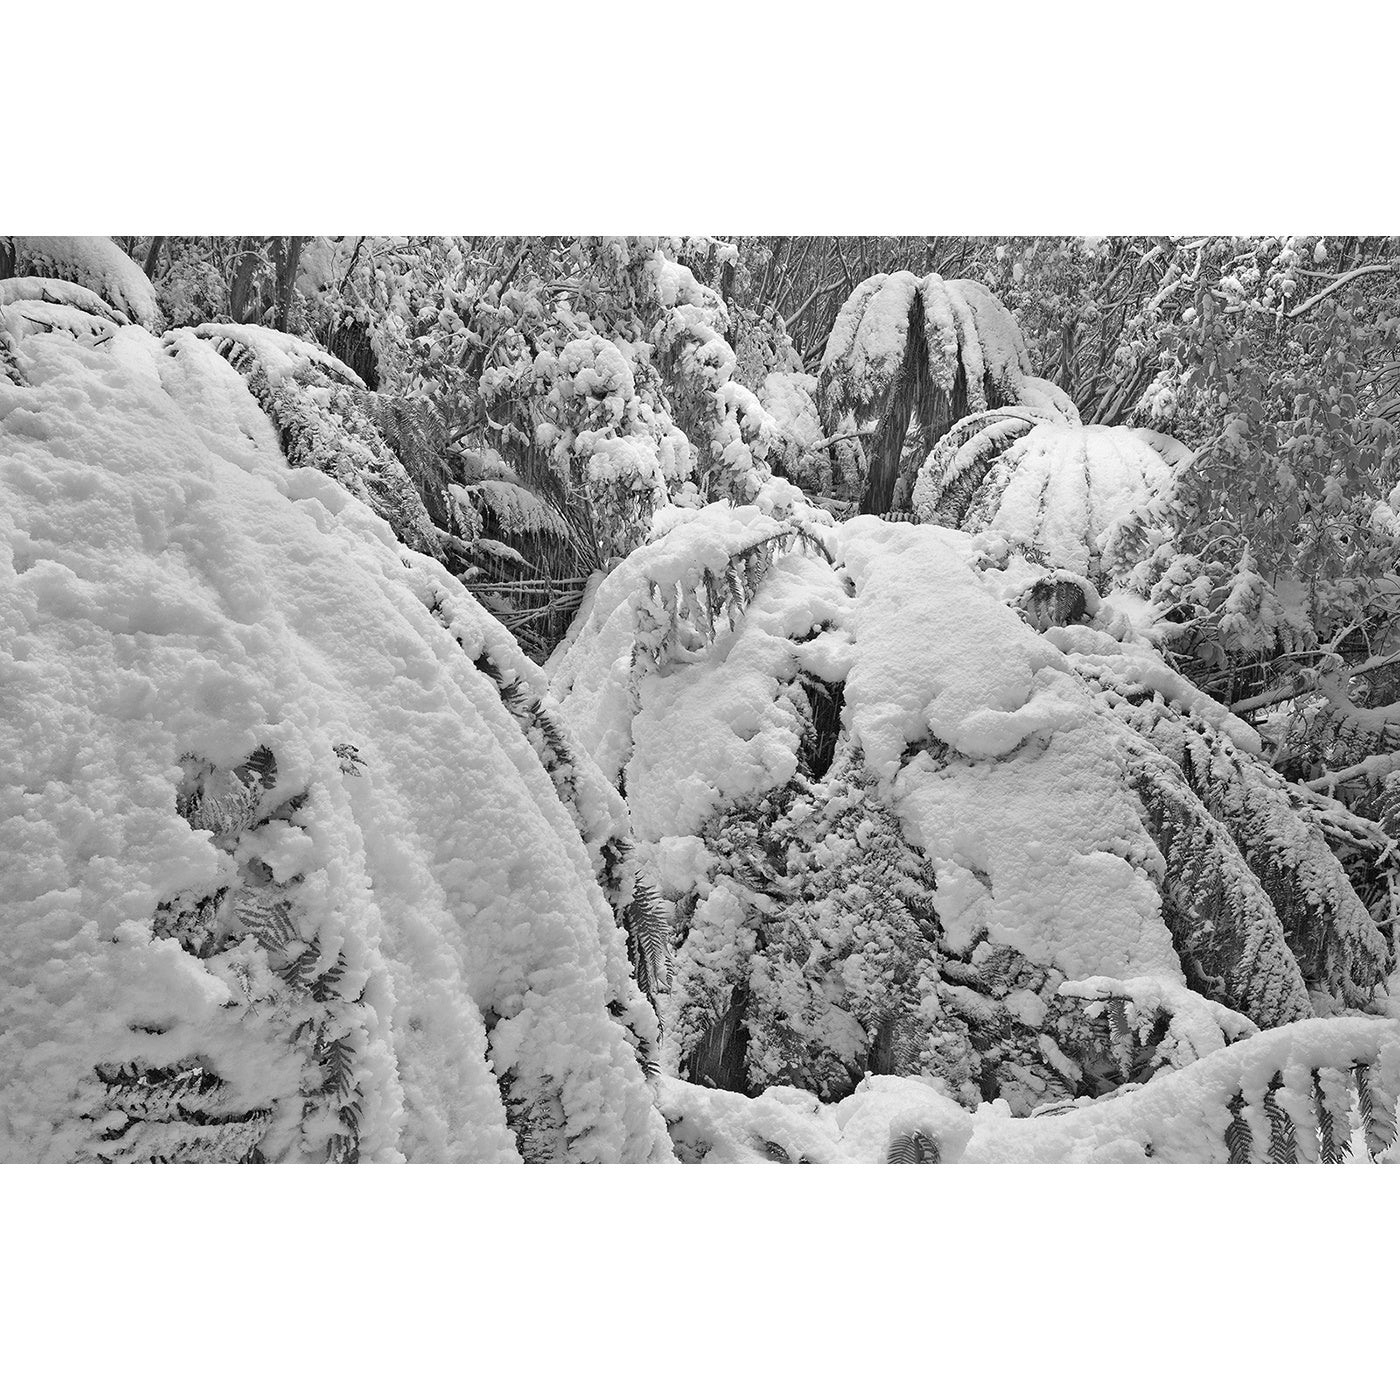 Chris Bell – Winter Snowfall on Man Ferns